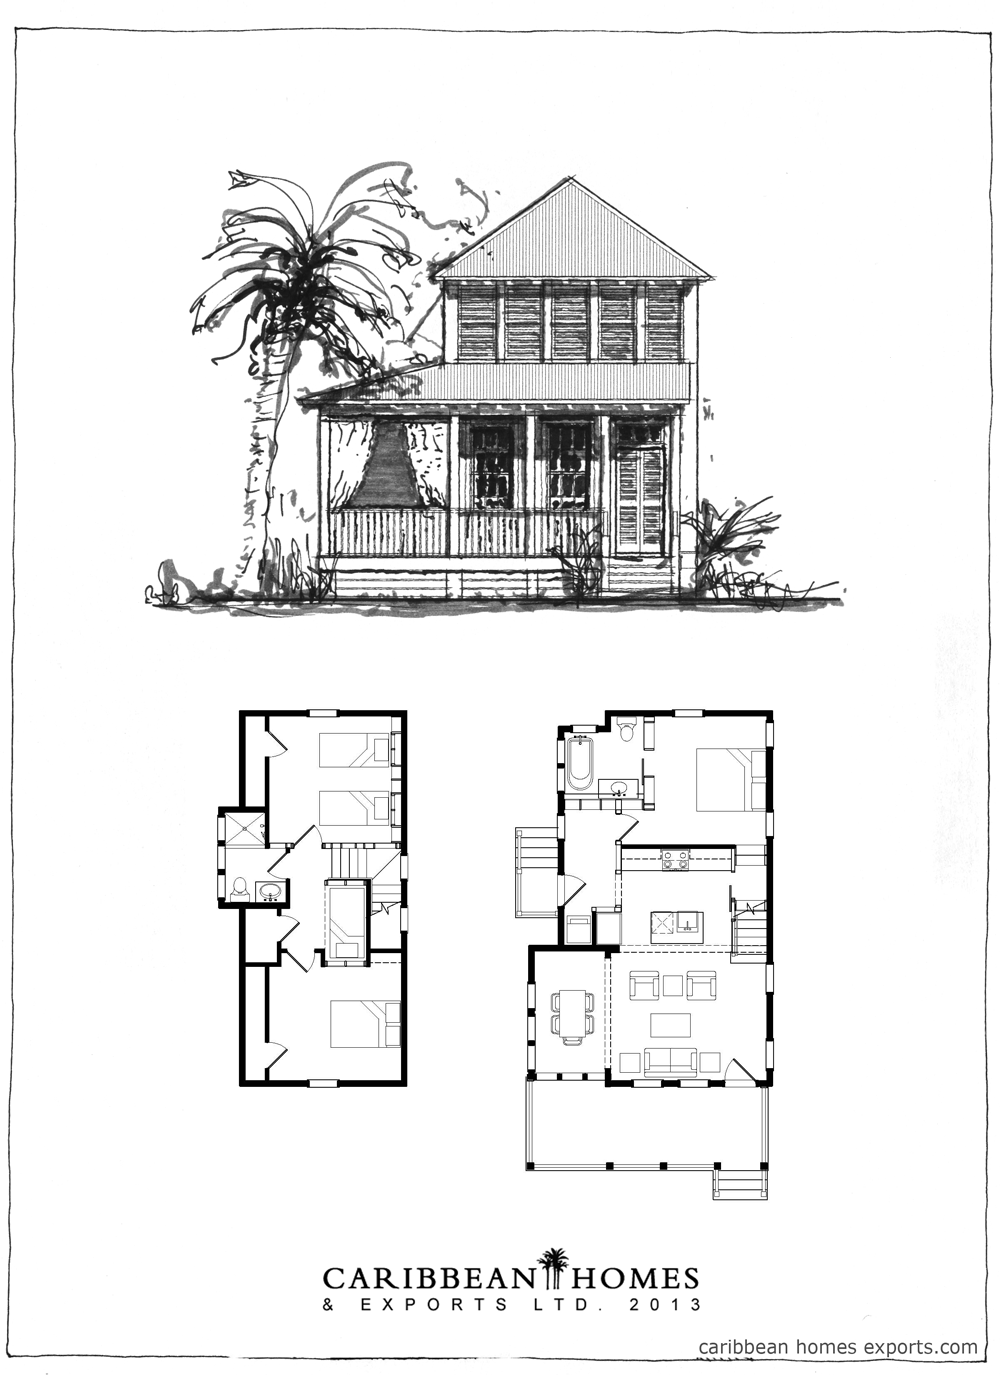 Caribbean homes and exports houses for Caribbean home plans